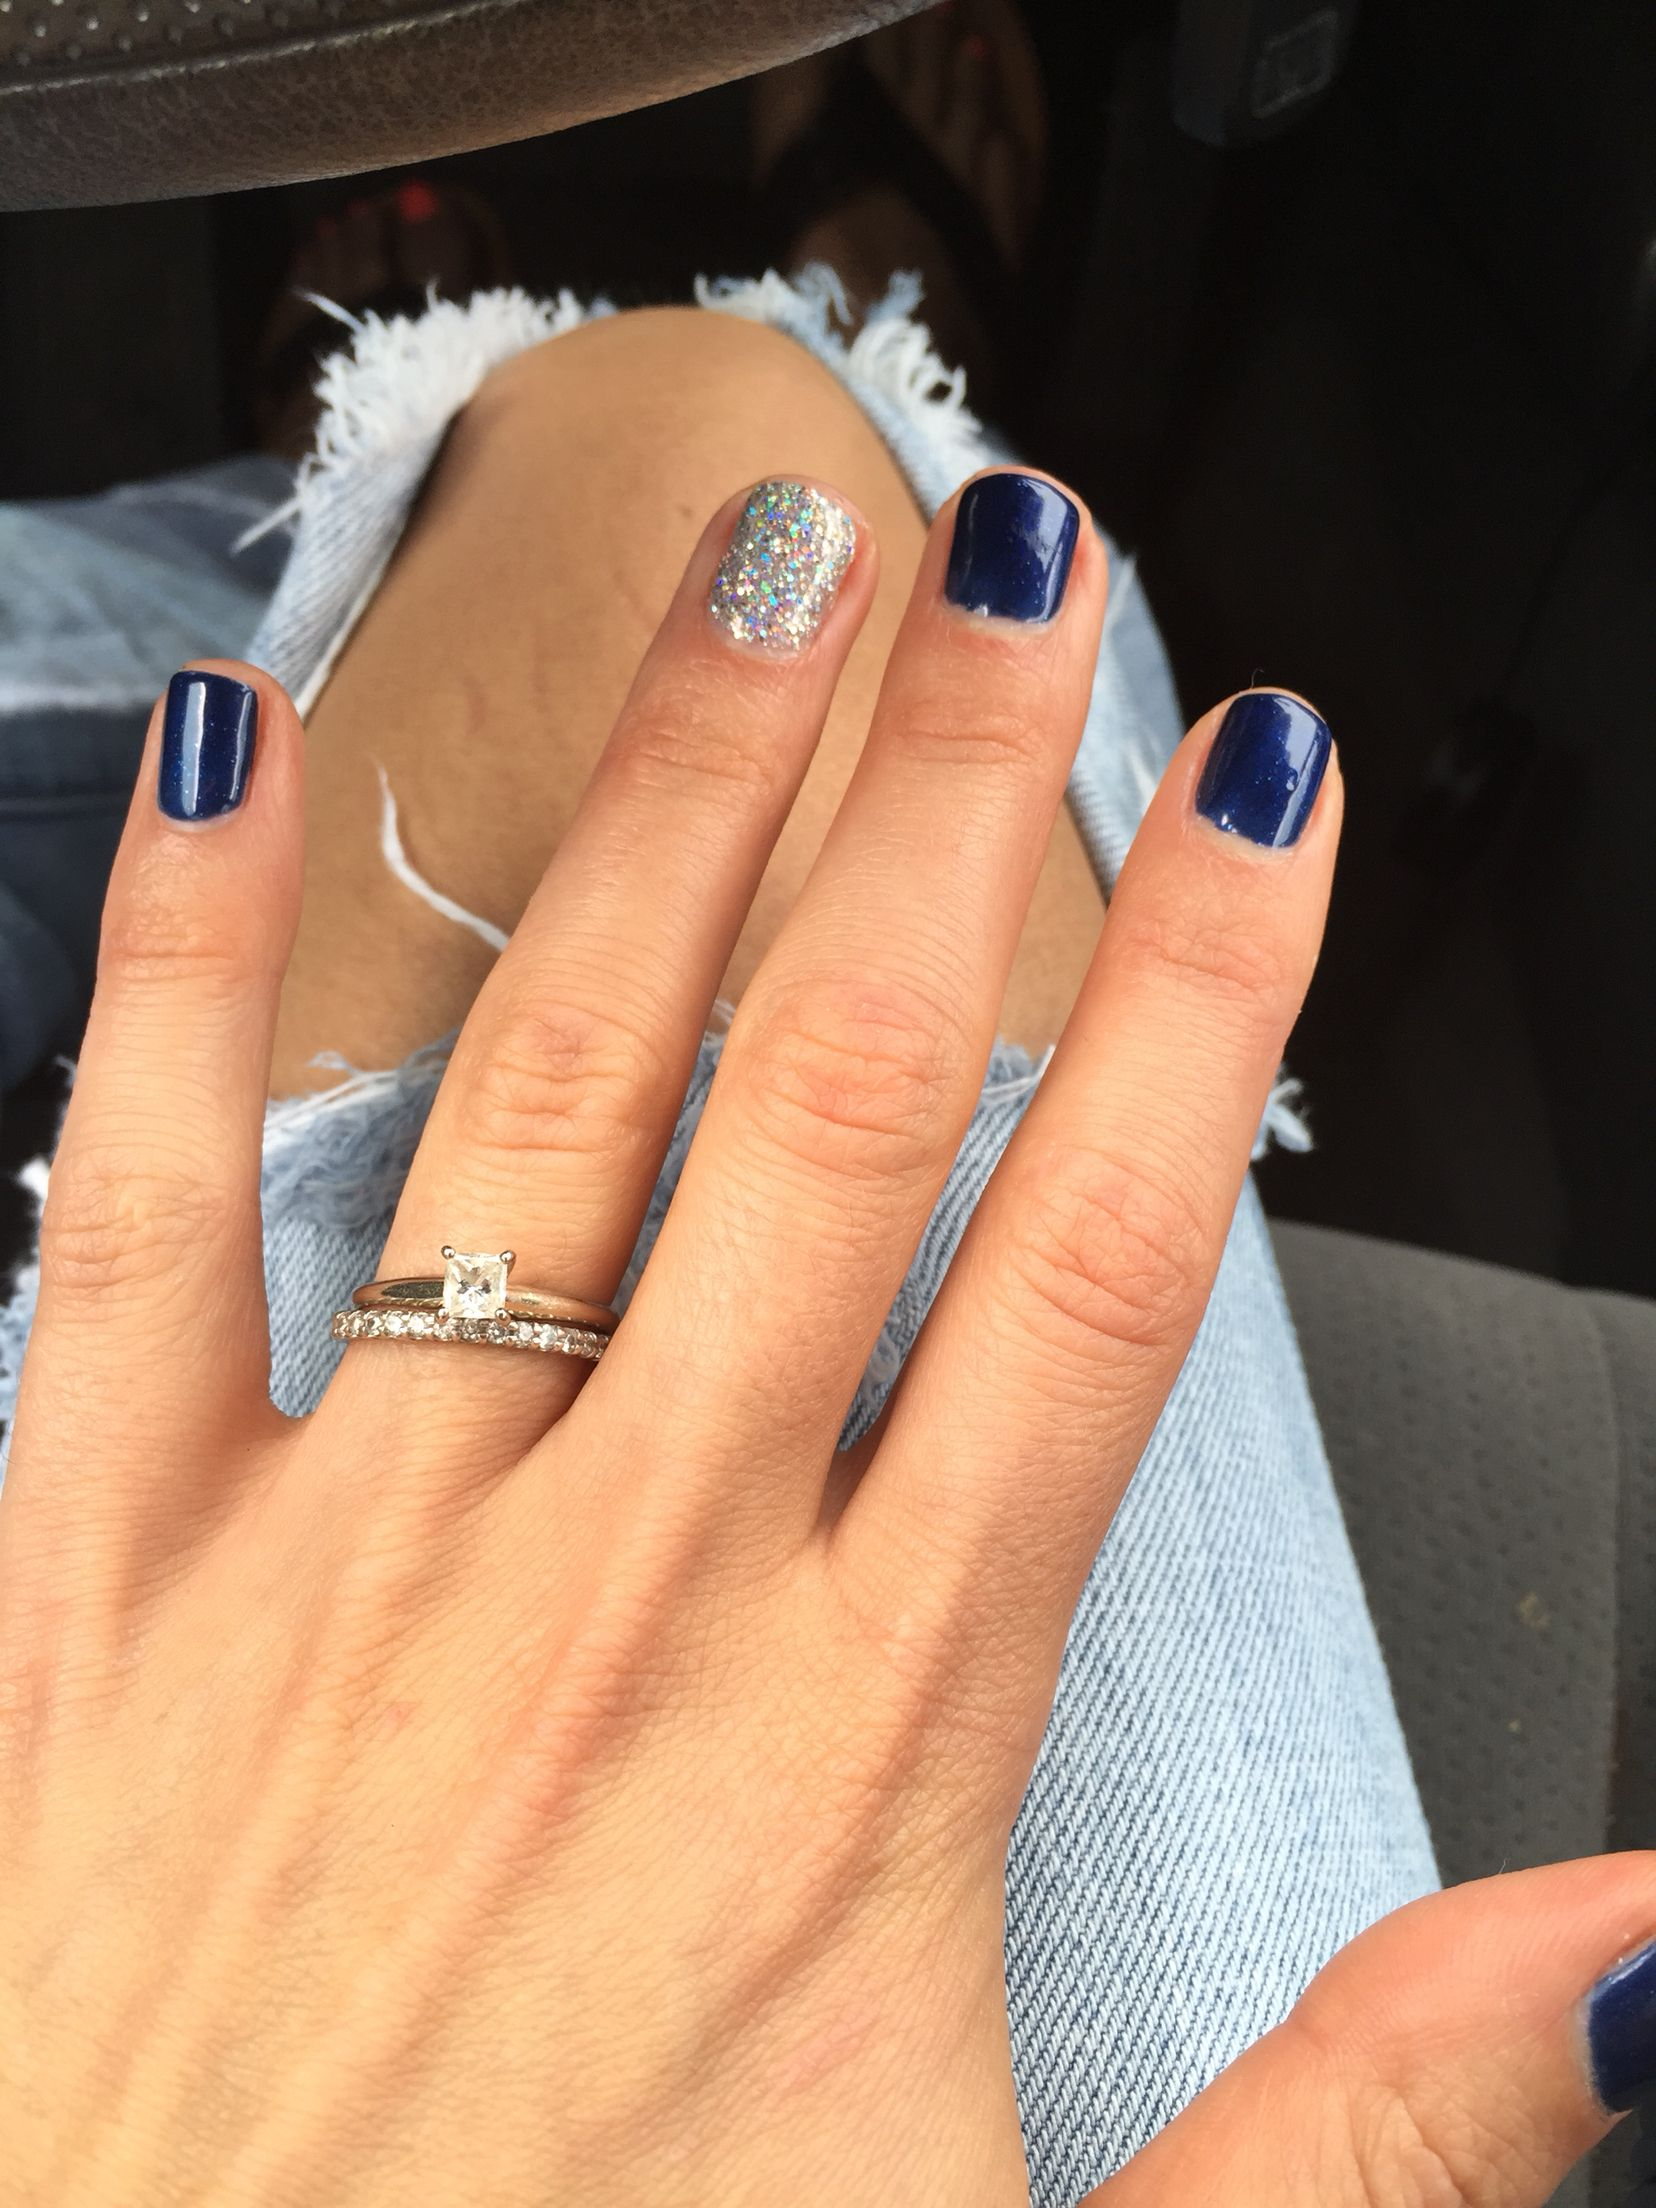 Nails Ready For The 4th Of July Shellac